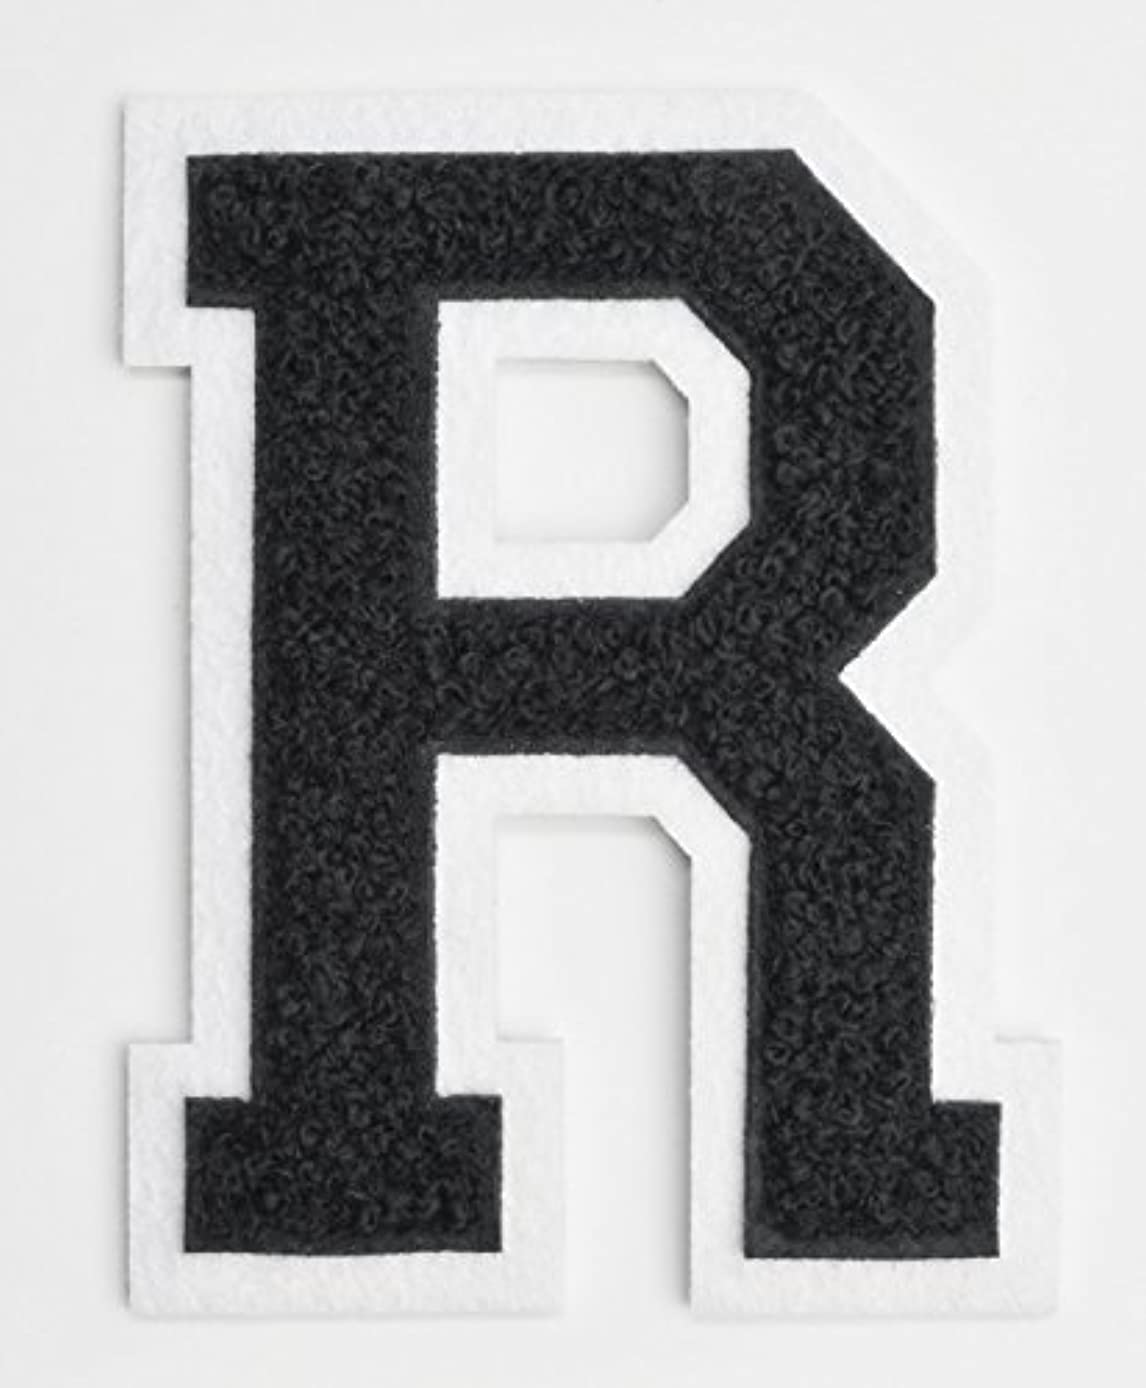 Varsity Letter Patches - Black Embroidered Chenille Letterman Patch - 4 1/2 inch Iron-On Letter Initials (Black, Letter R Patch)